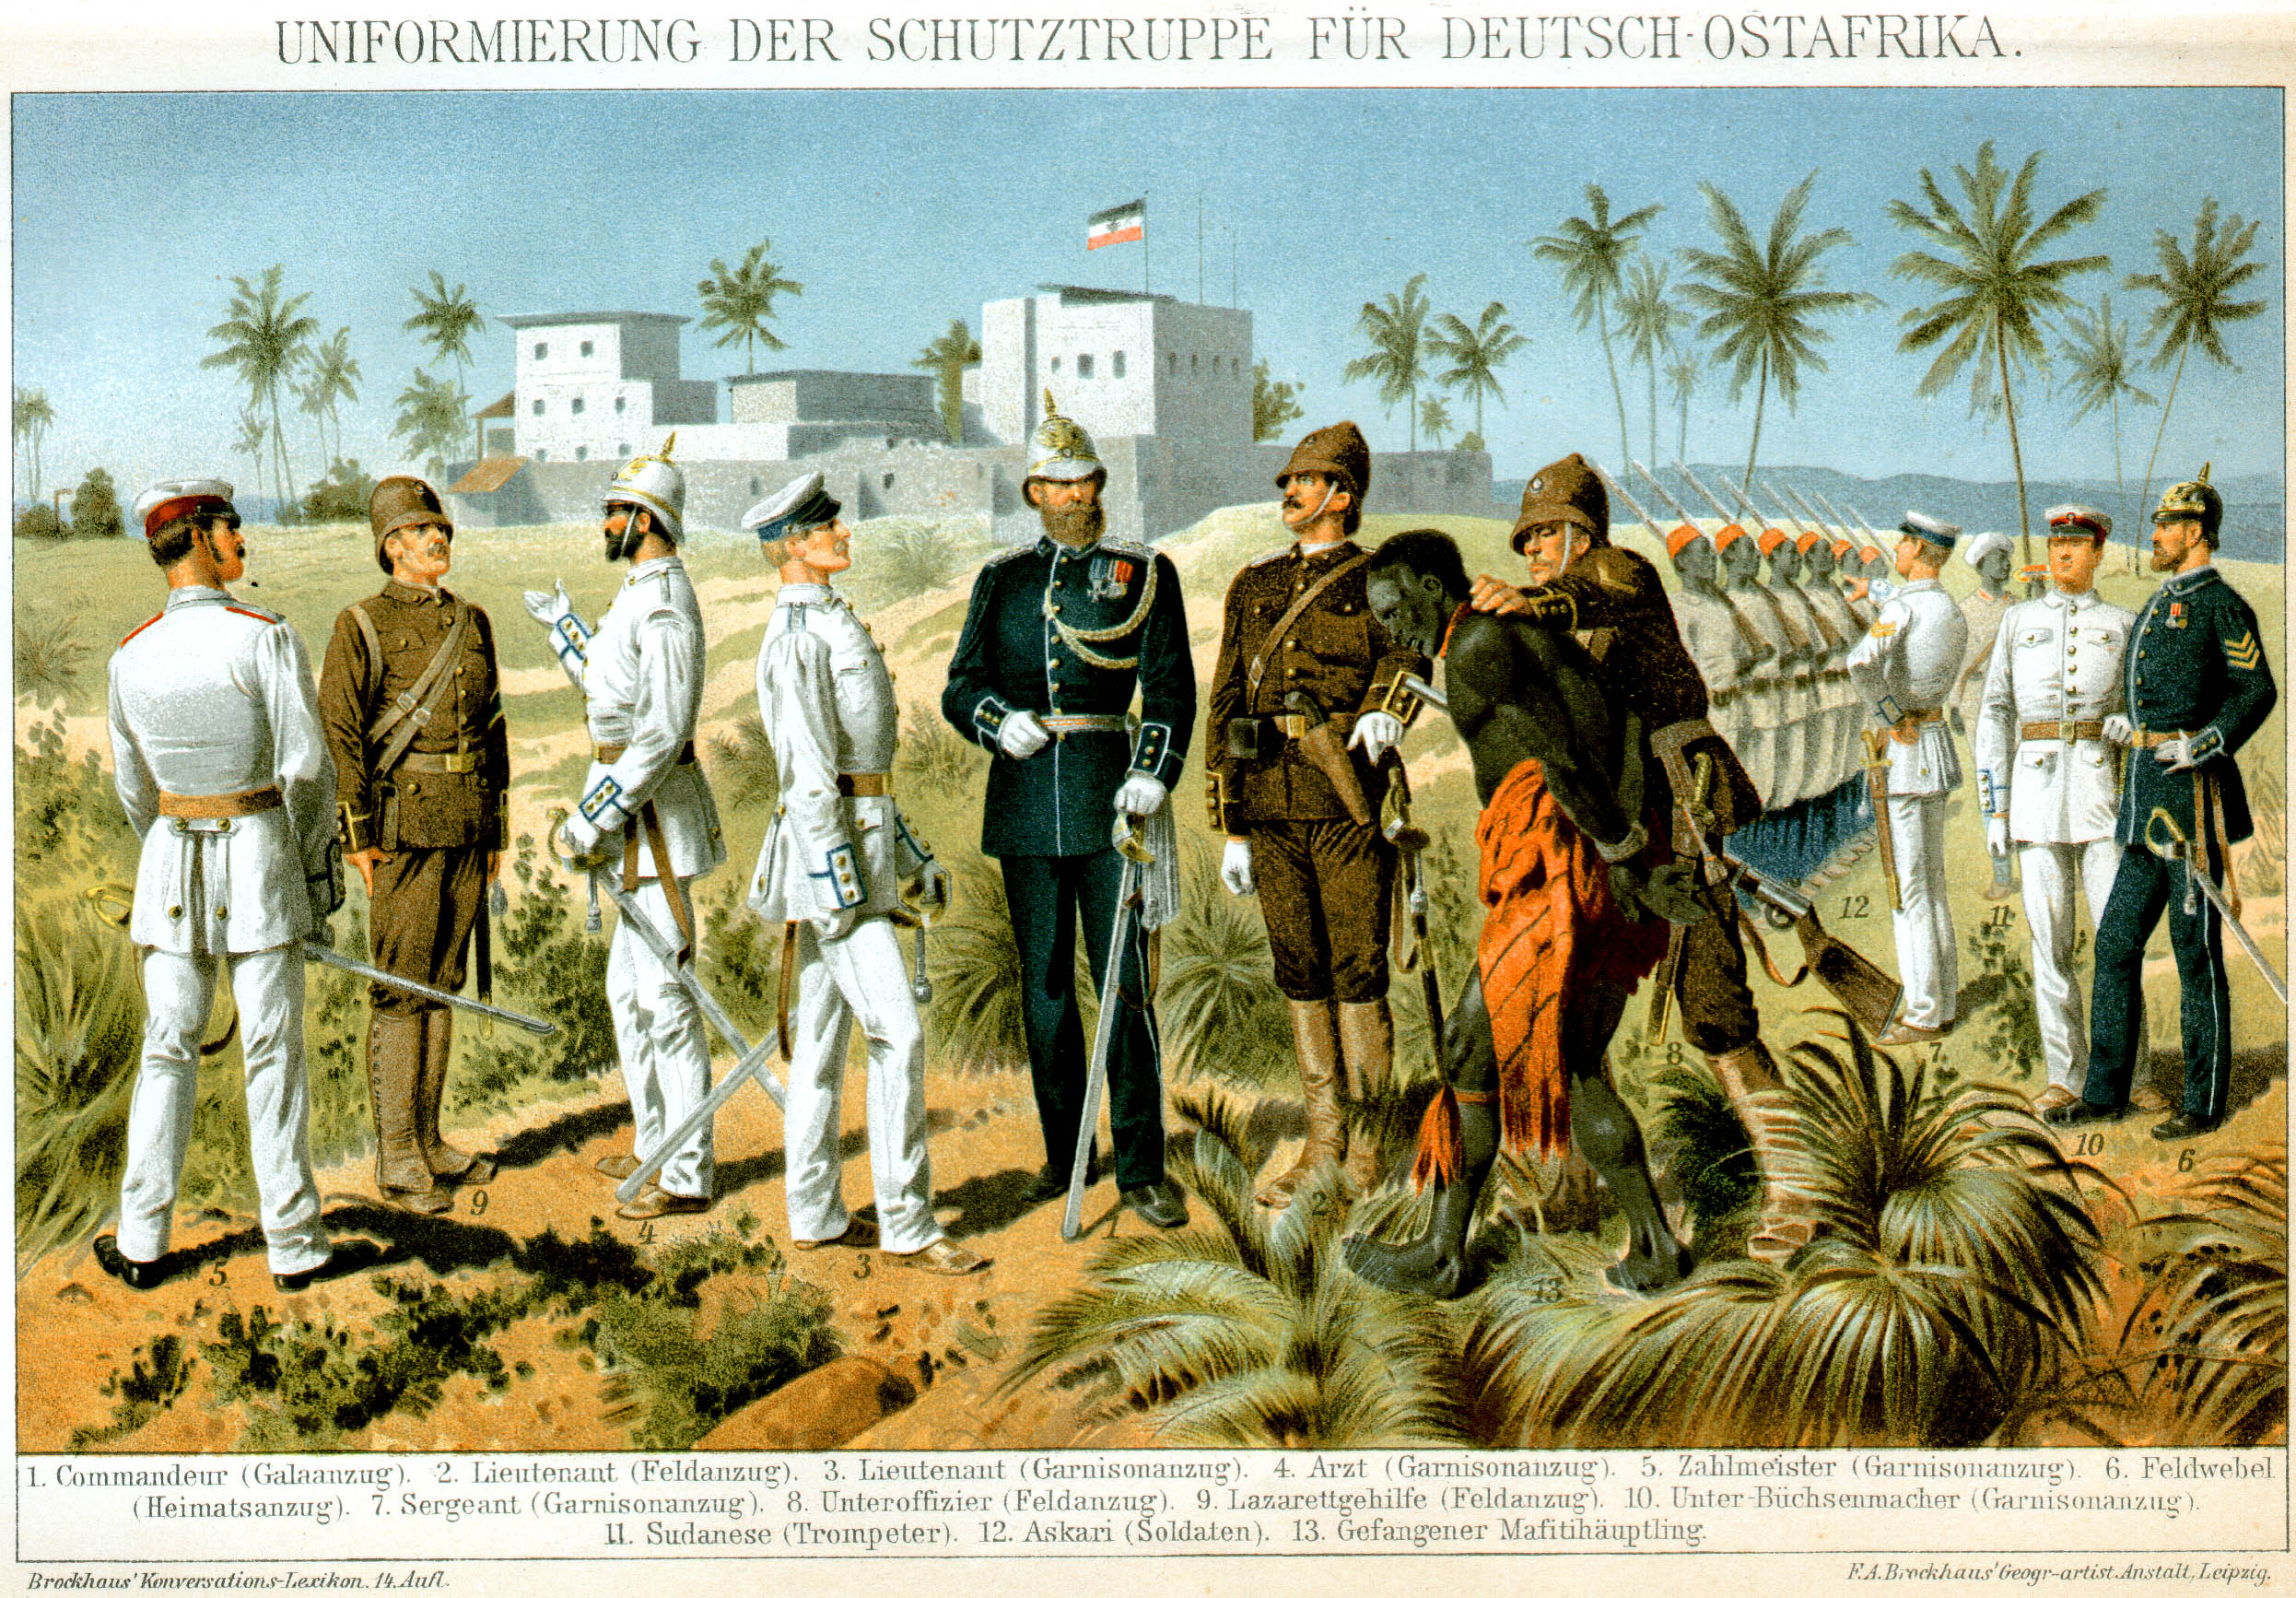 German East Africa (Deutsch-Ostafrika) - the future of Tanzania, Burundi, Rwanda, as well as part of modern Mozambique, from 1885 to 1919 years, was the most populous colony of the Second Reich.